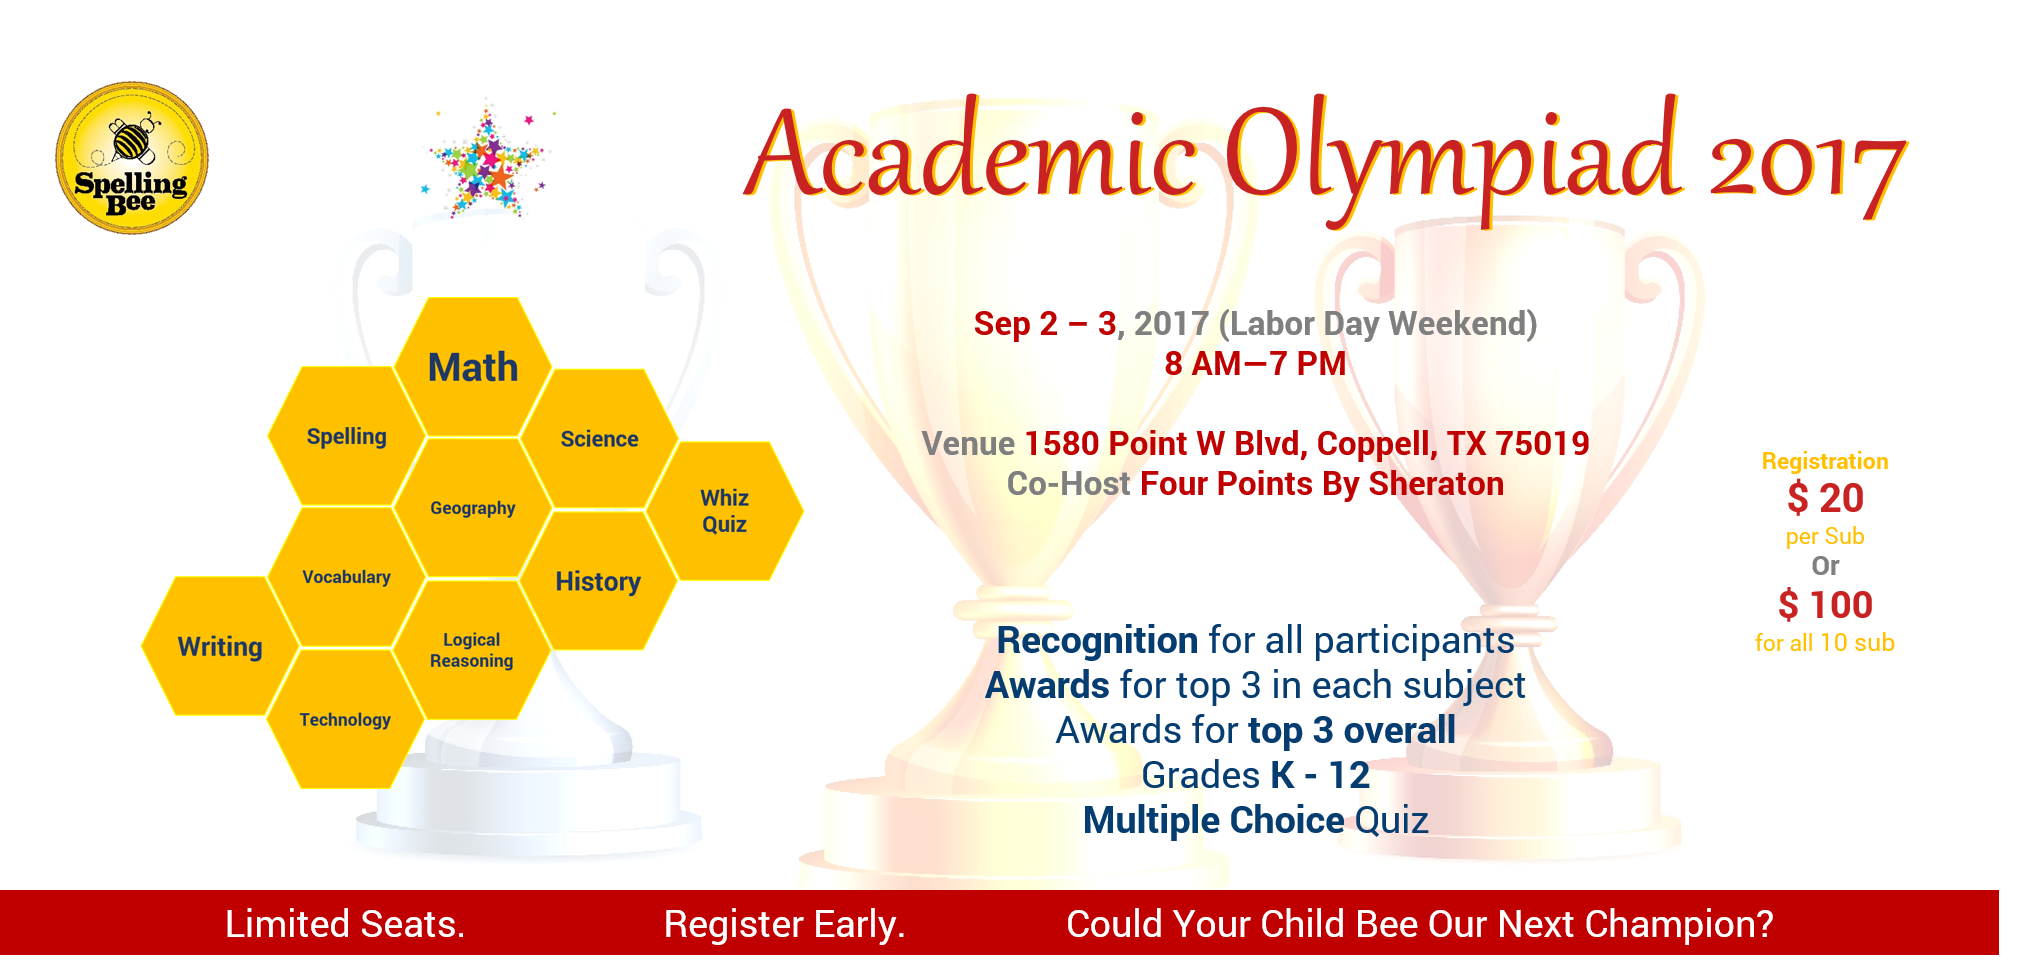 academicOlympaid2017-1